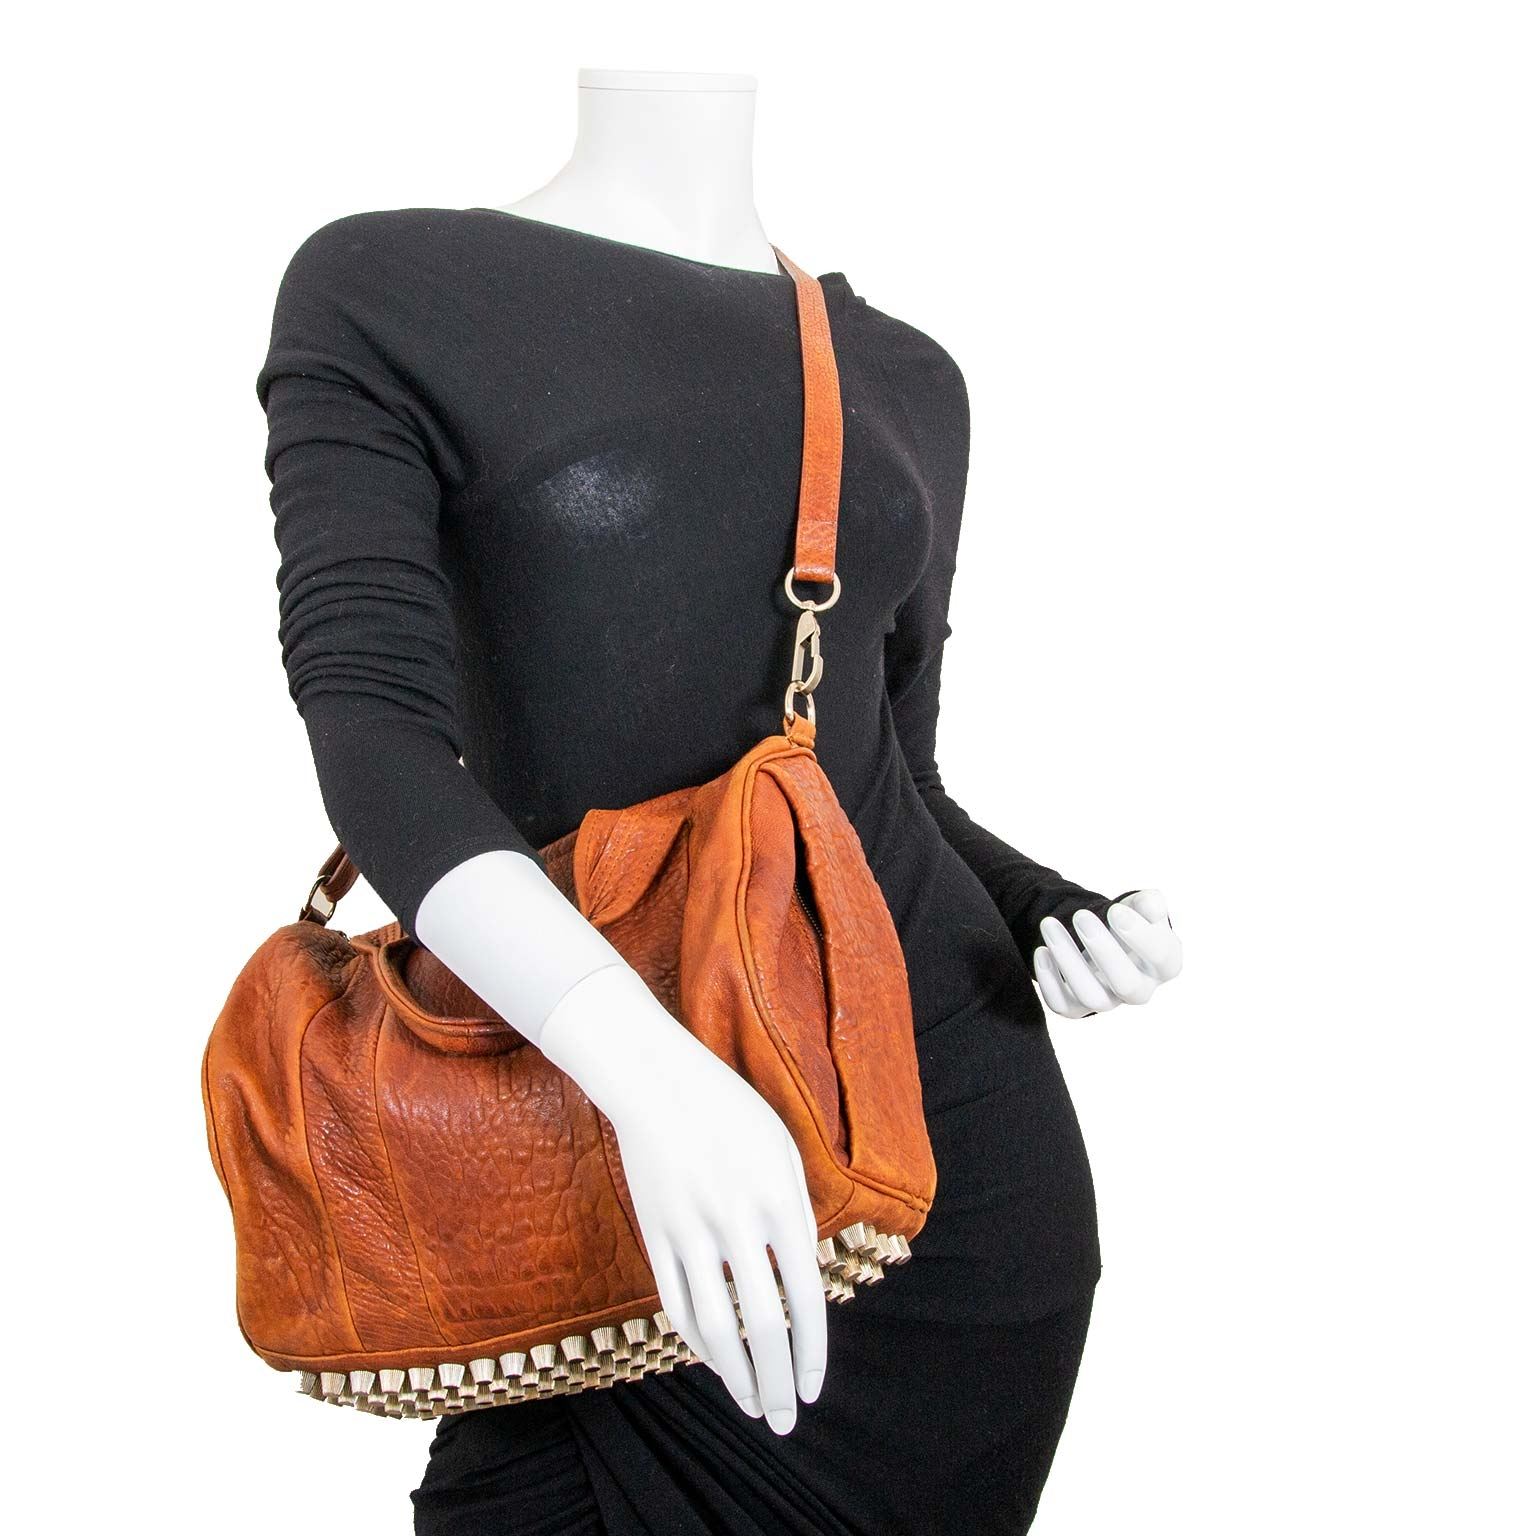 alexander wang brown grained leather rocco bag now for sale at labellov vintage fashion webshop belgium